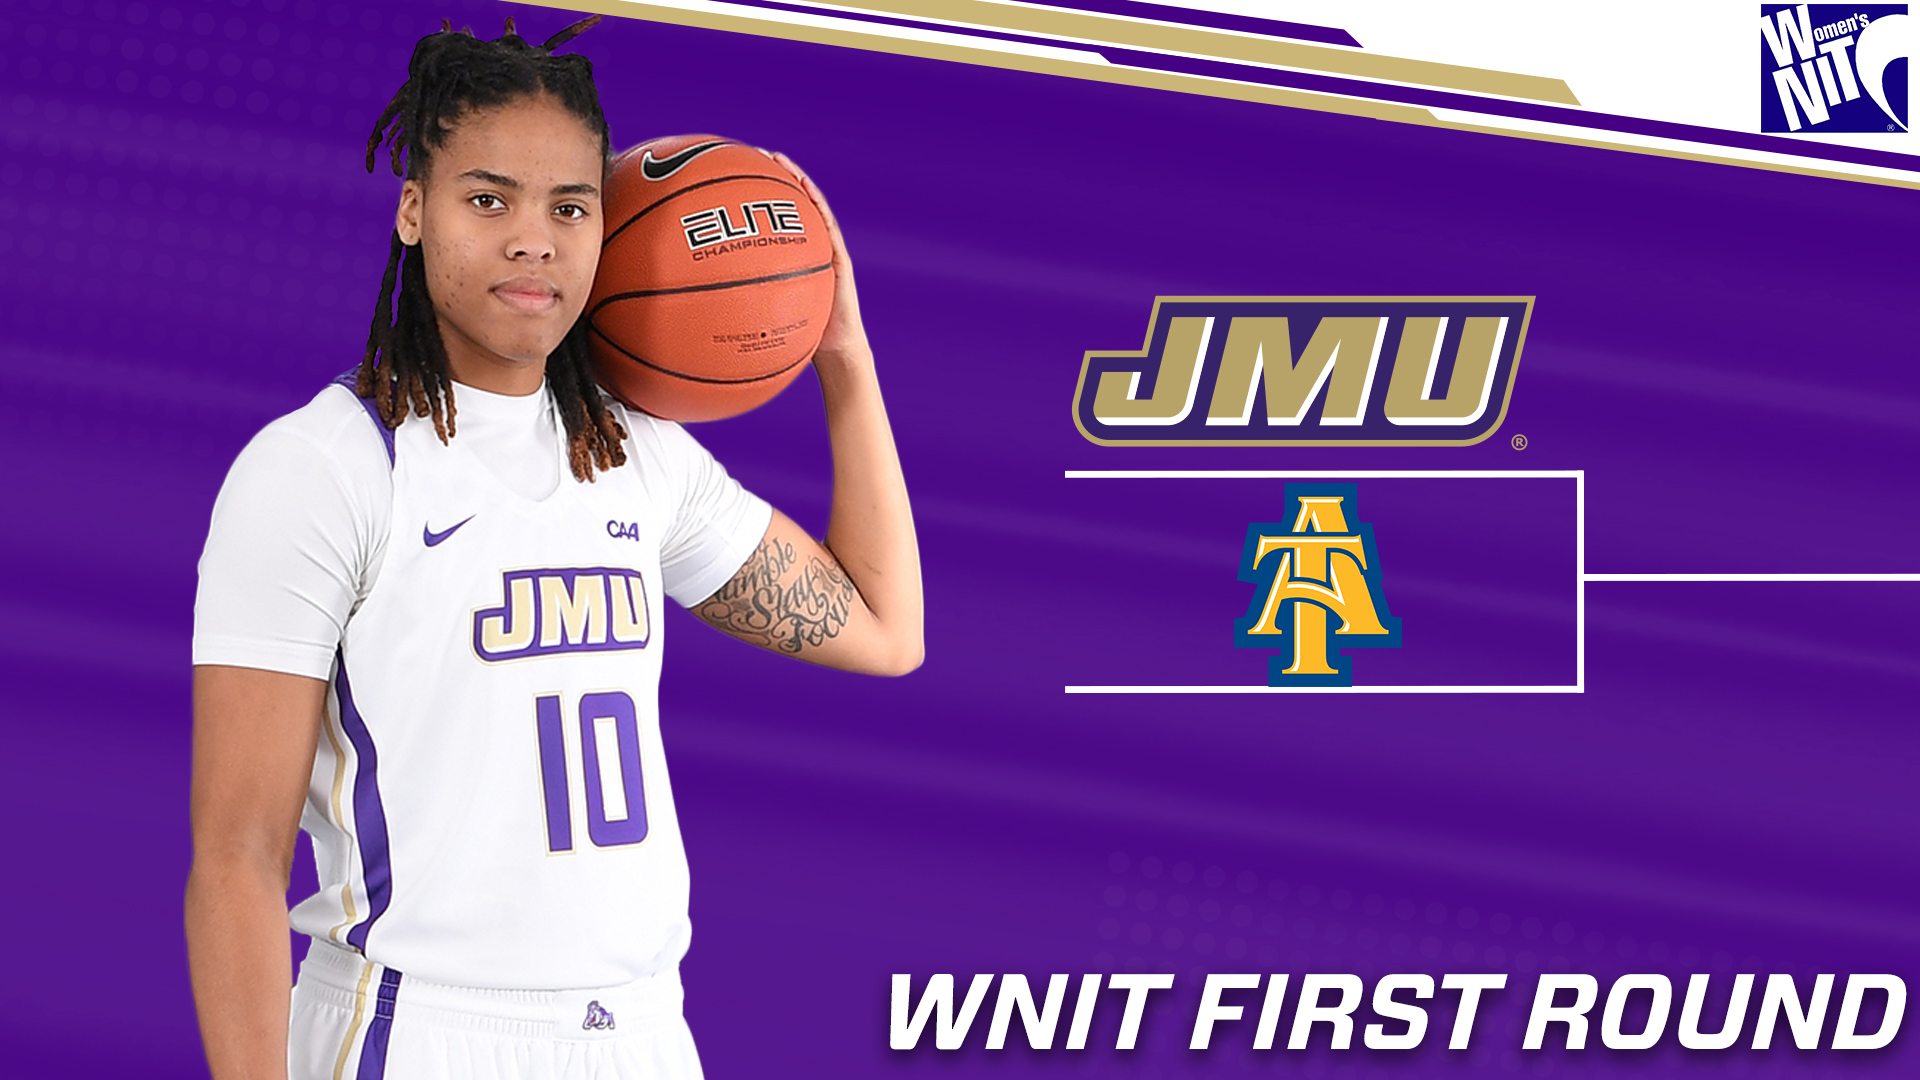 Women's Basketball: Dukes Host North Carolina A&T In WNIT First Round